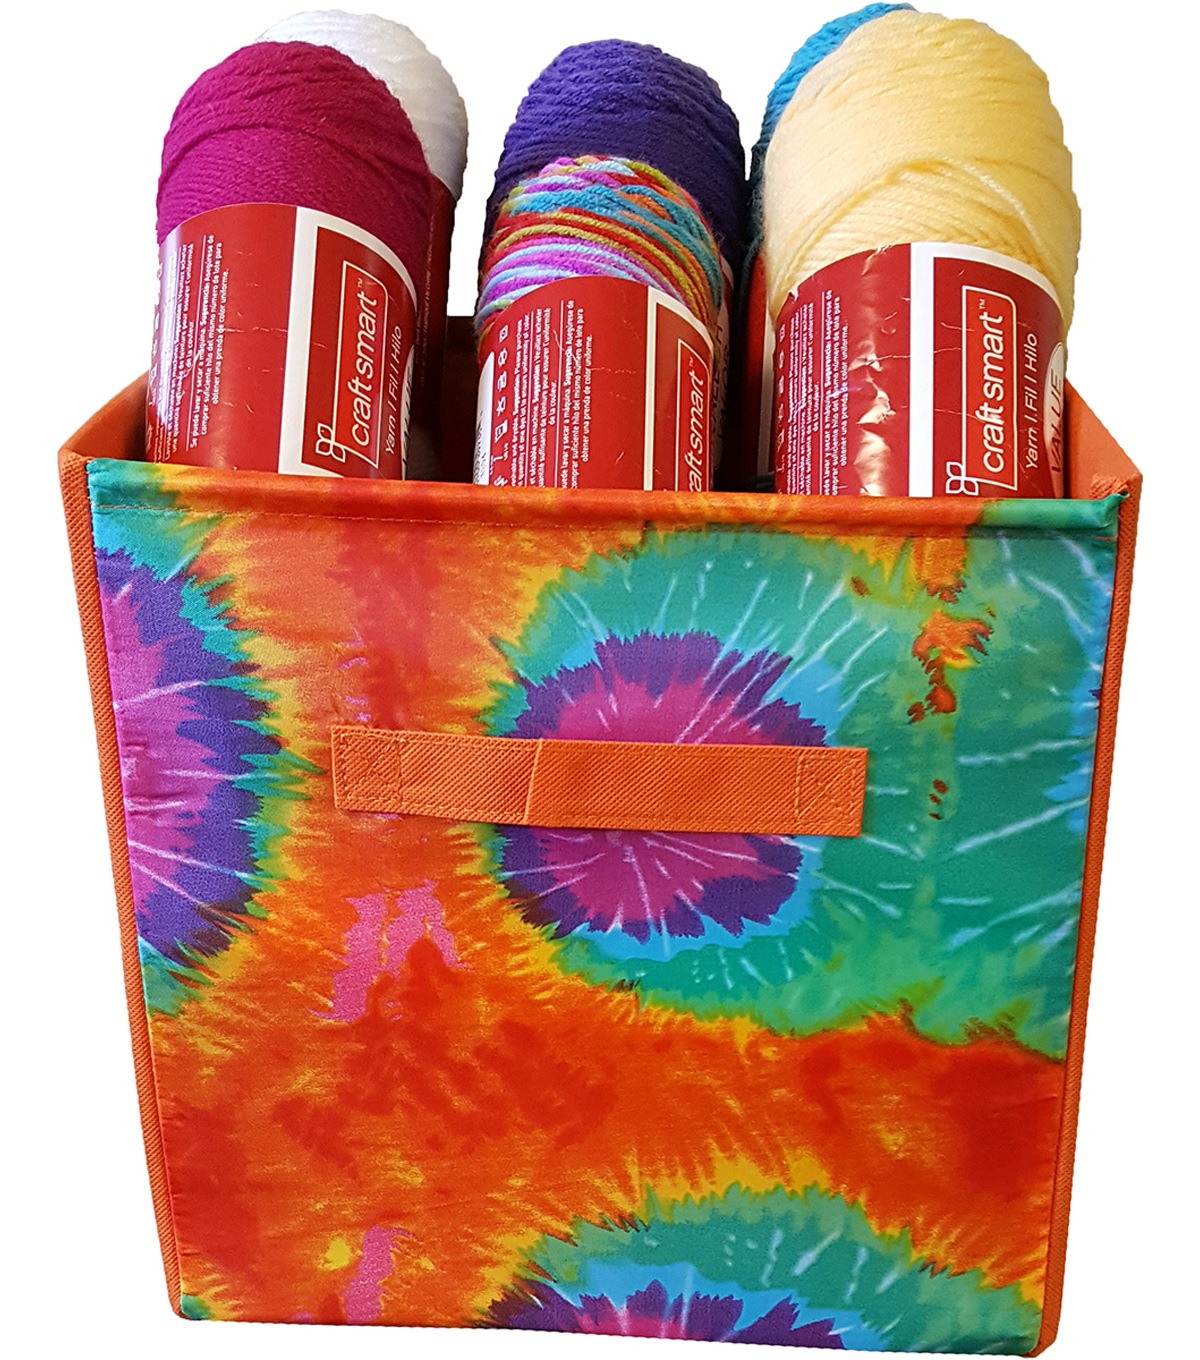 Yarn & Craft Storage Cube 12\u0022X12\u0022X12\u0022-Orange Tie Dyed